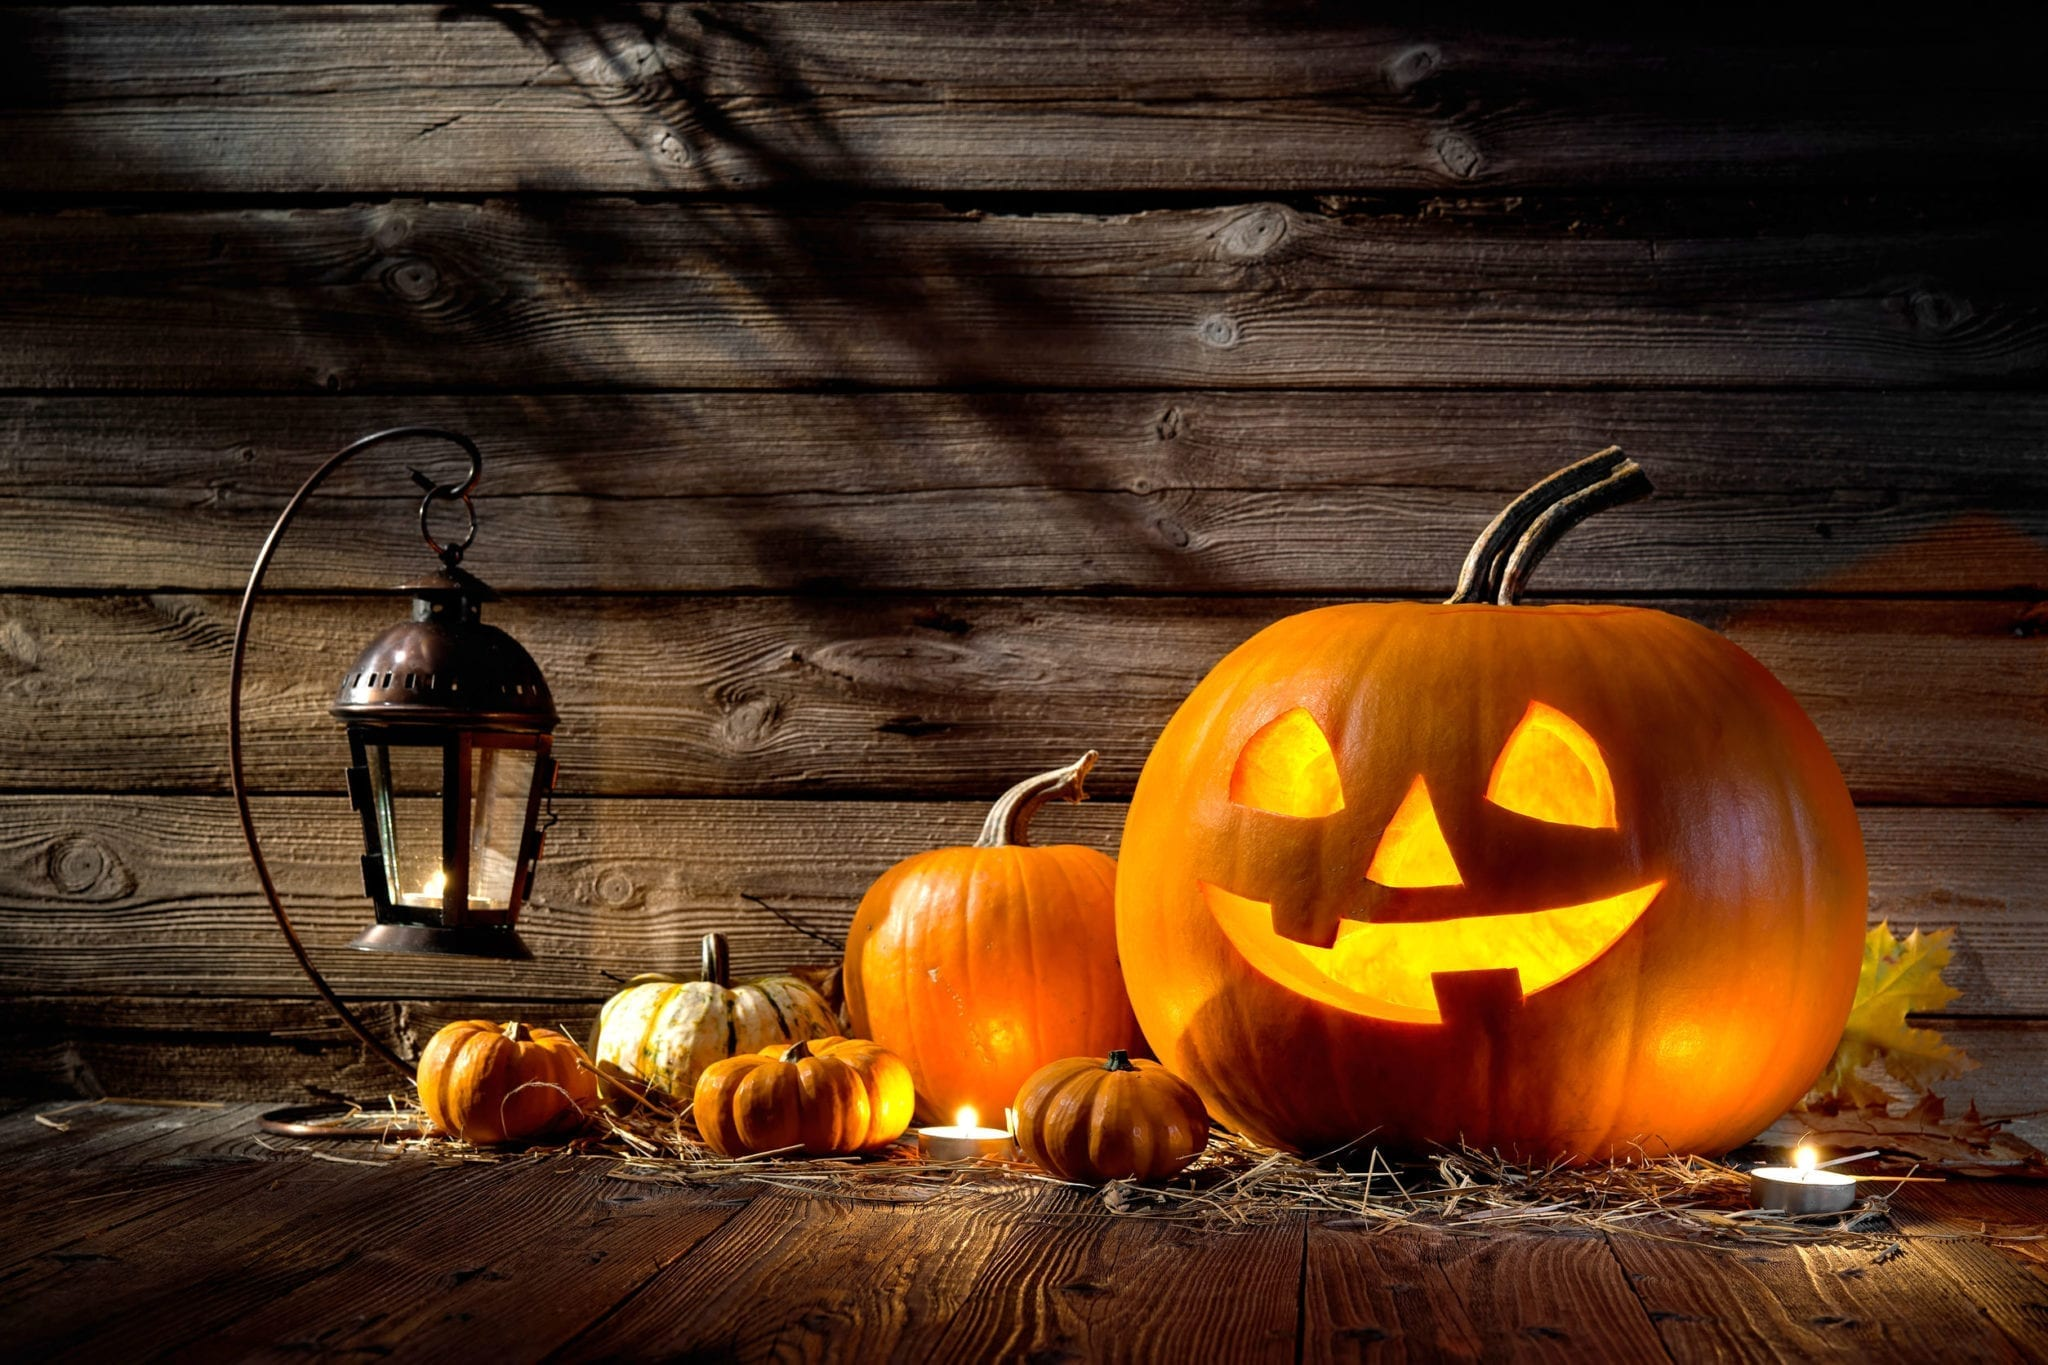 Beyond Razorblades: Why Halloween Is a Scary Holiday for Florida Kids